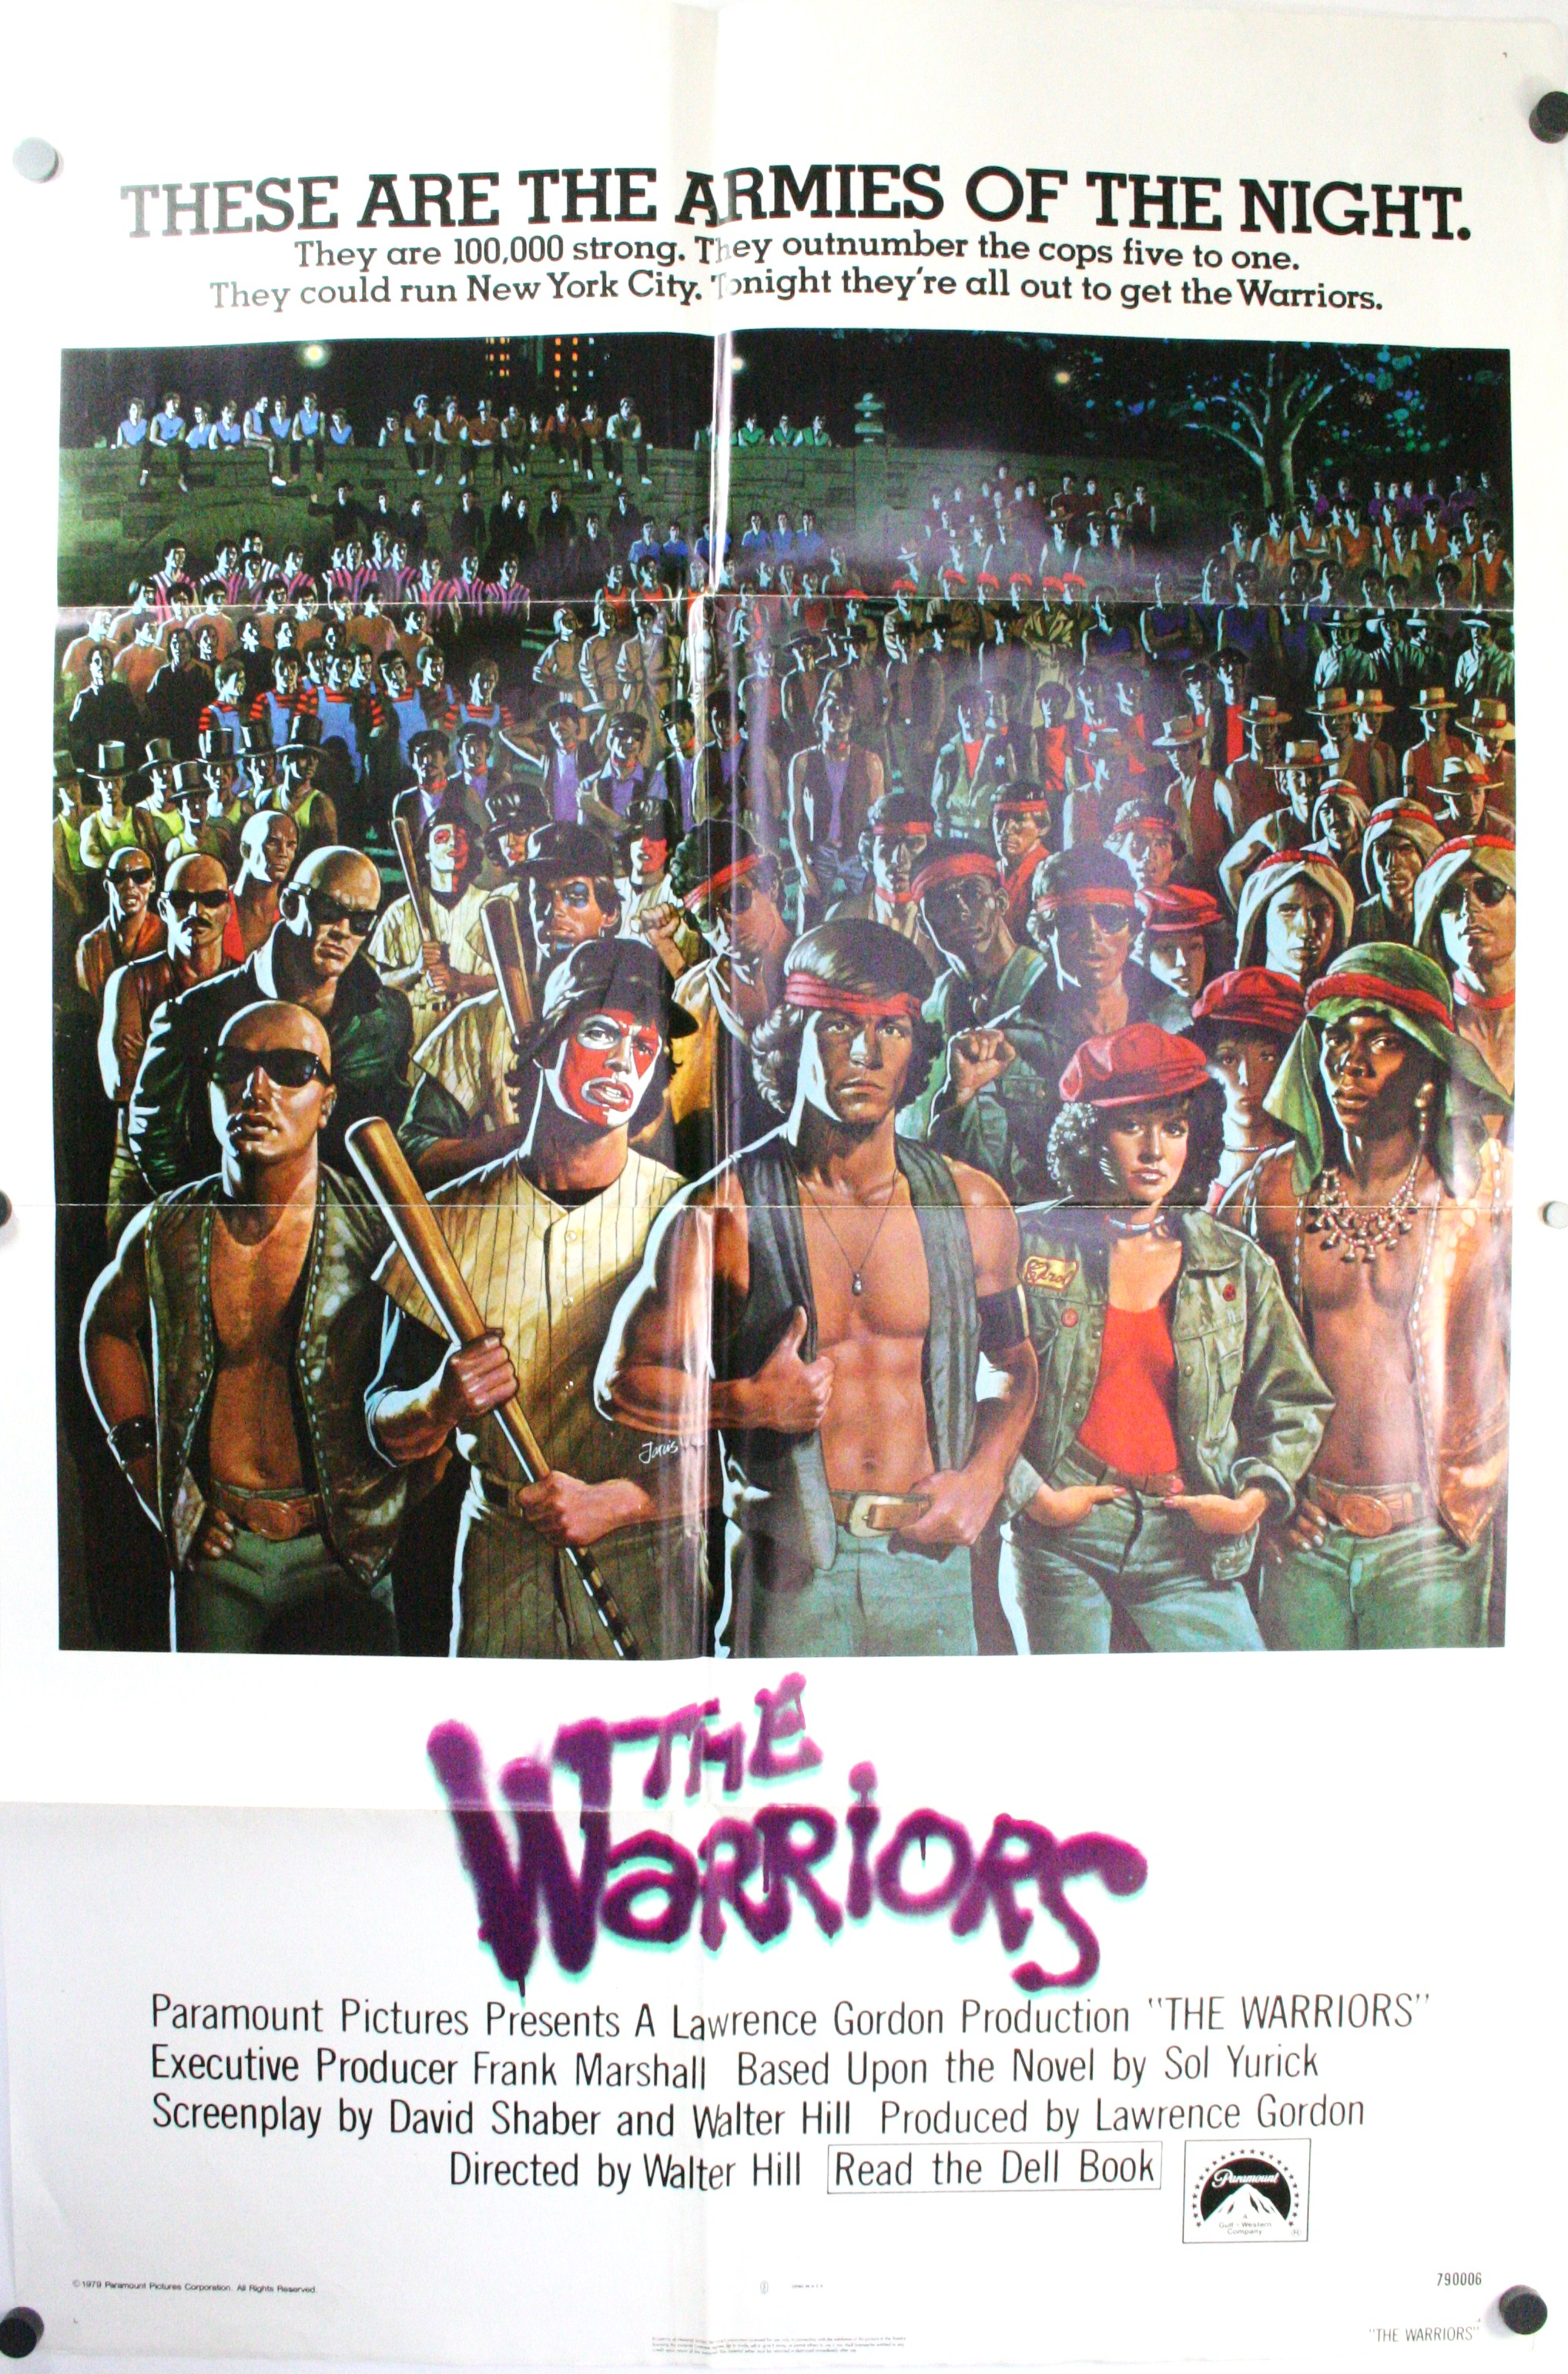 the warriors 1979 original 1 sheet movie theater poster starring    The Warriors Movie Poster